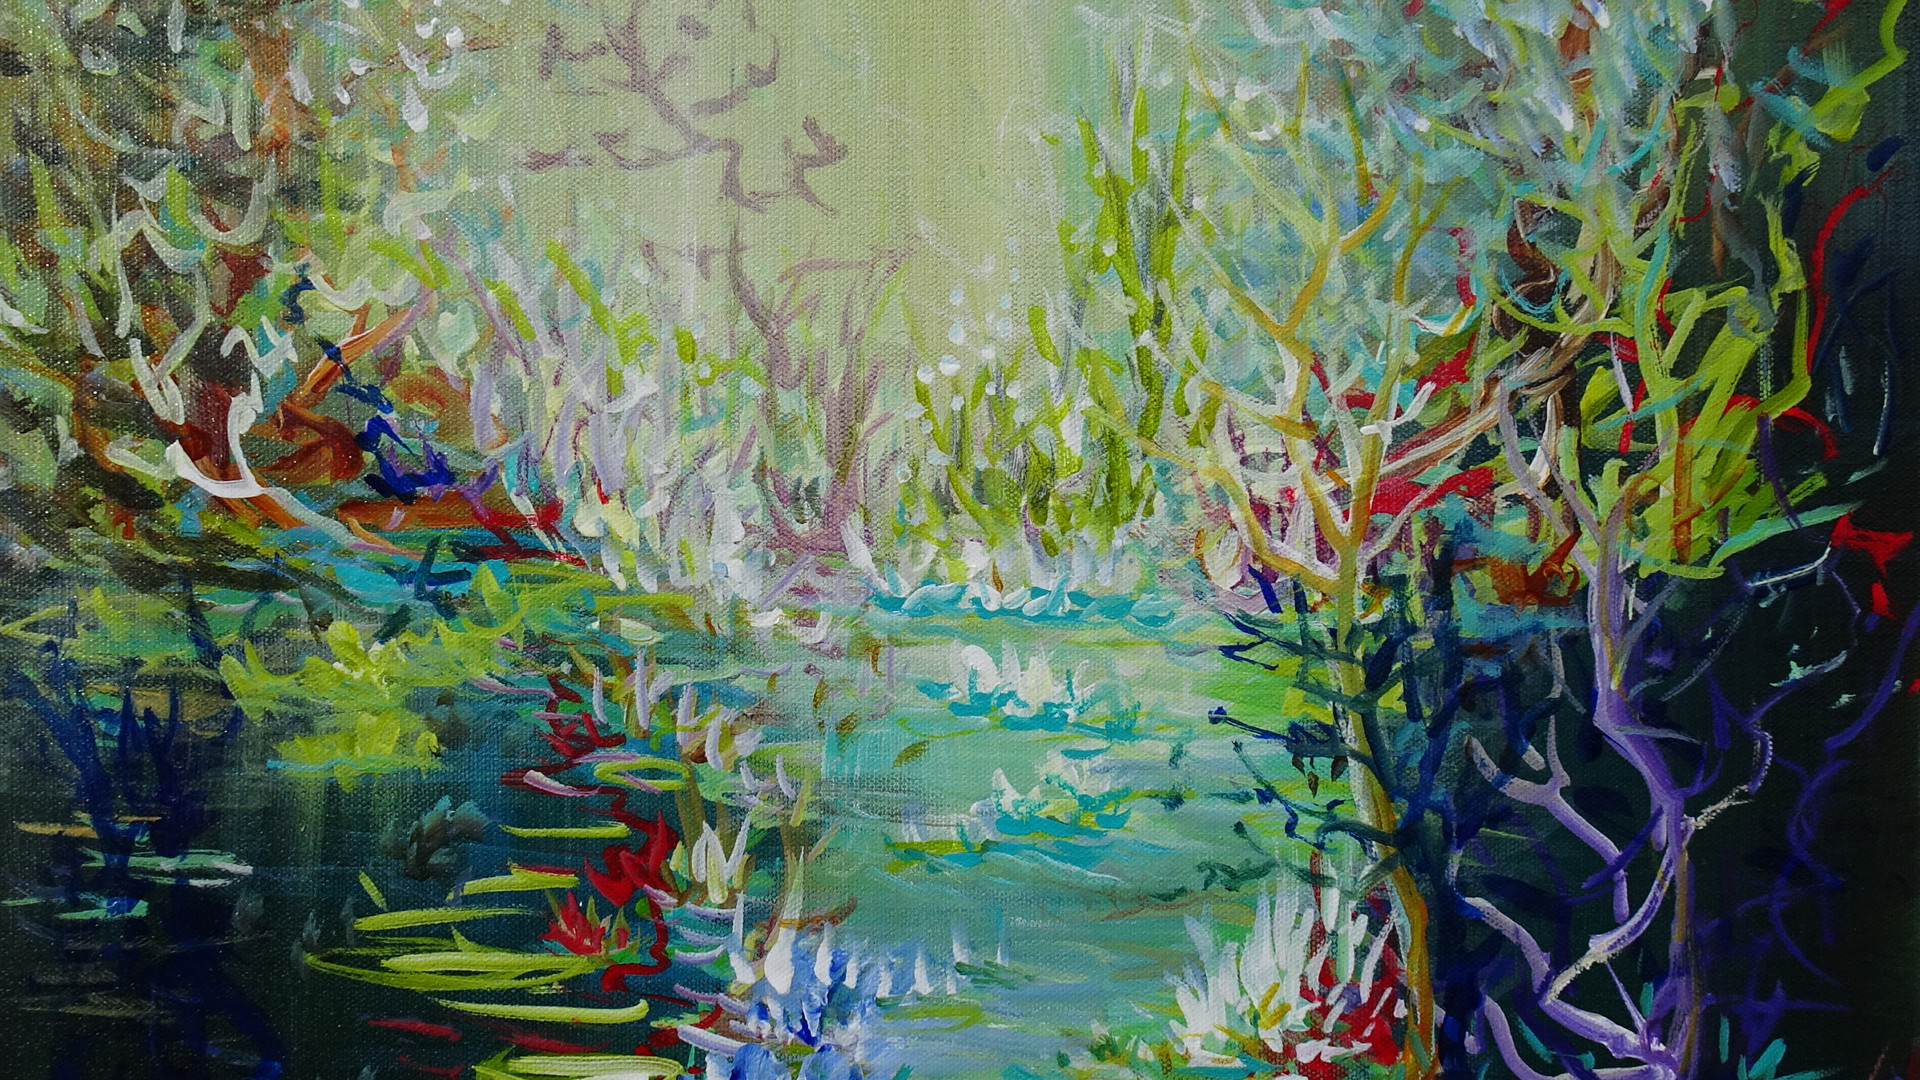 Abstract Landscape Pond Painting